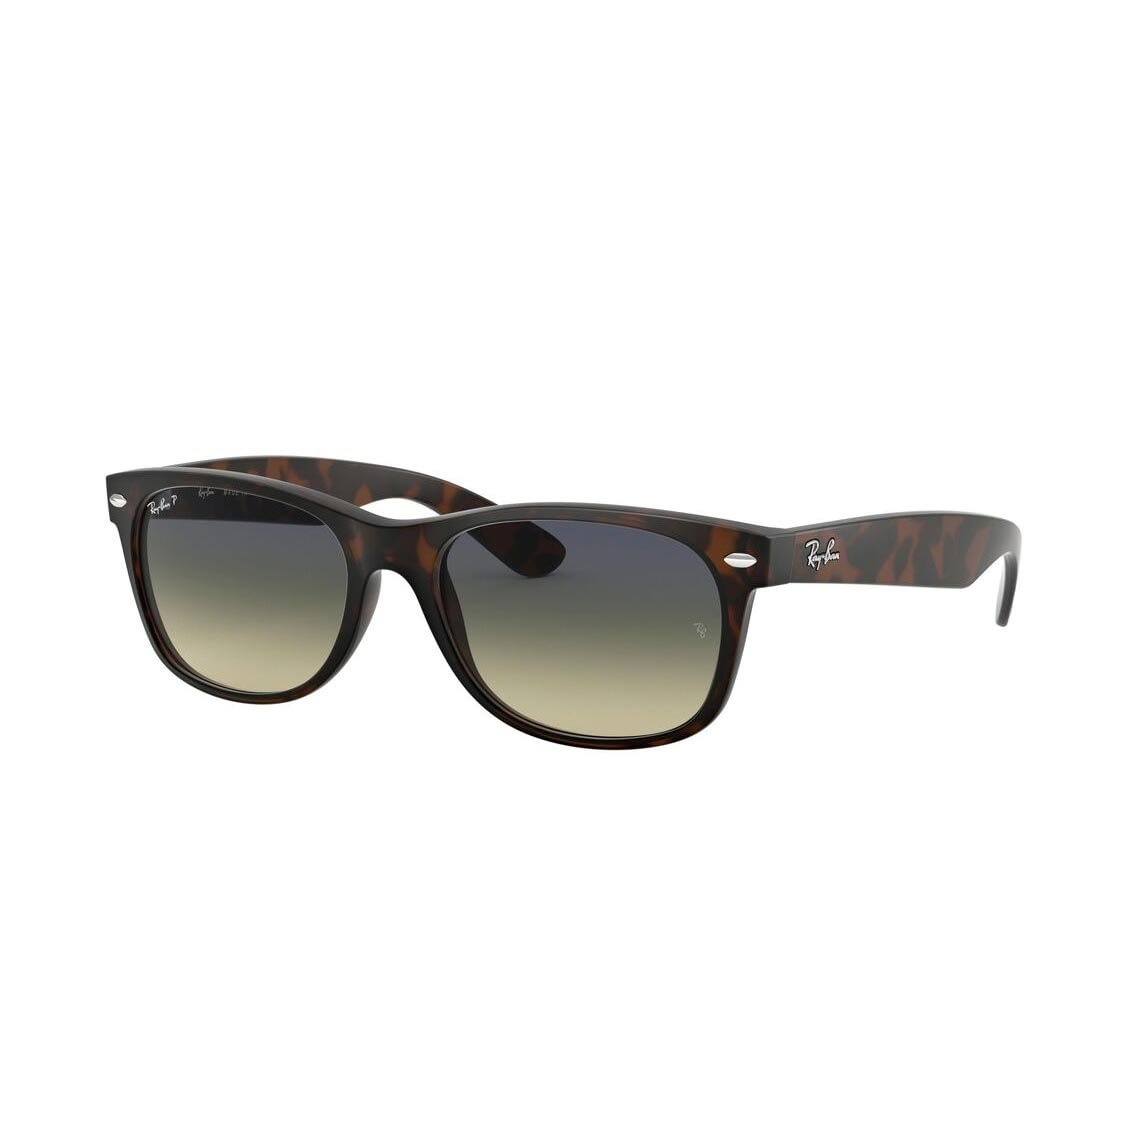 Ray-Ban New Wayfarer RB2132 894/76 52